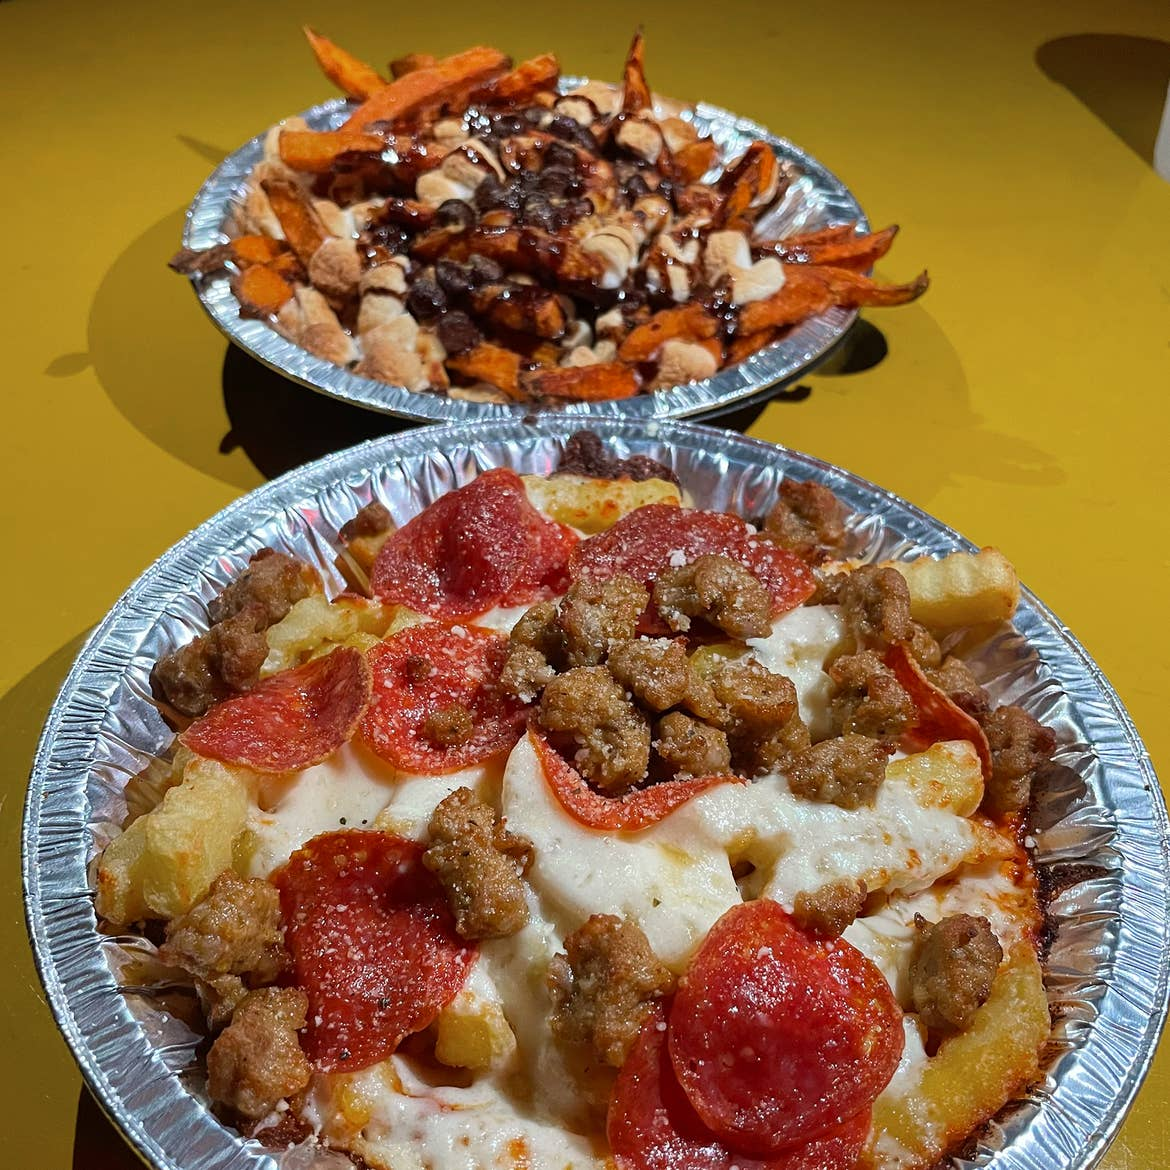 French fries with various toppings on a yellow table.